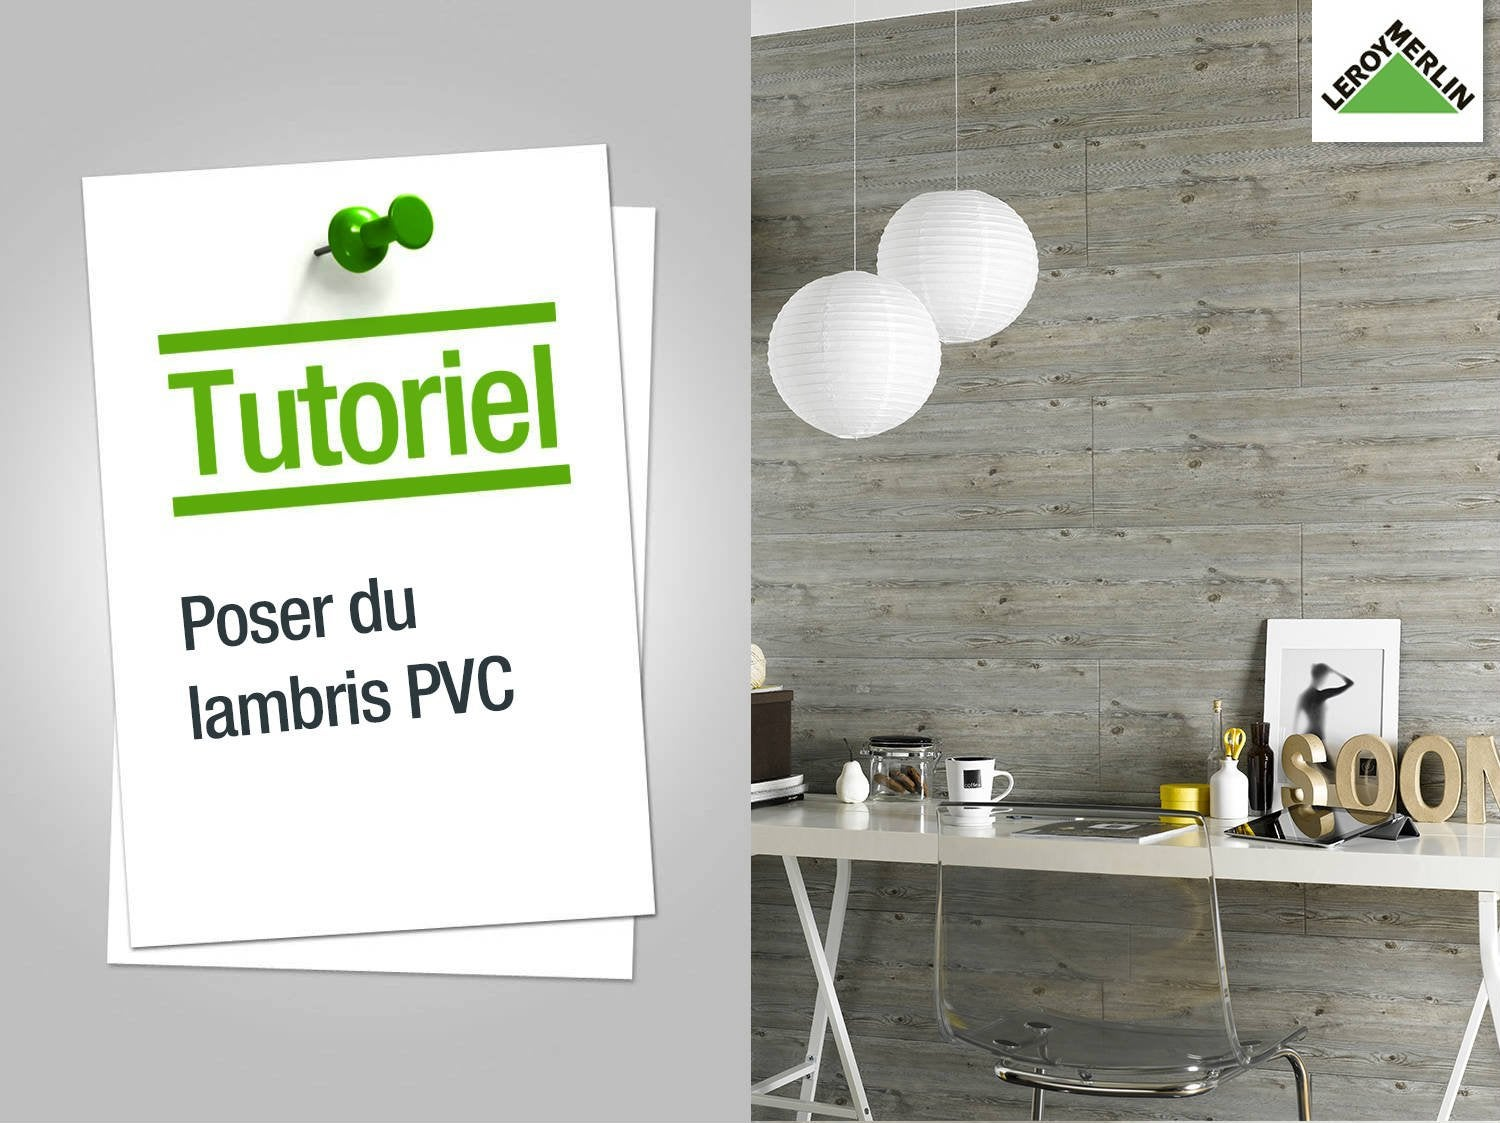 comment poser du lambris pvc ? | leroy merlin - Pose Lambris Pvc Salle De Bain